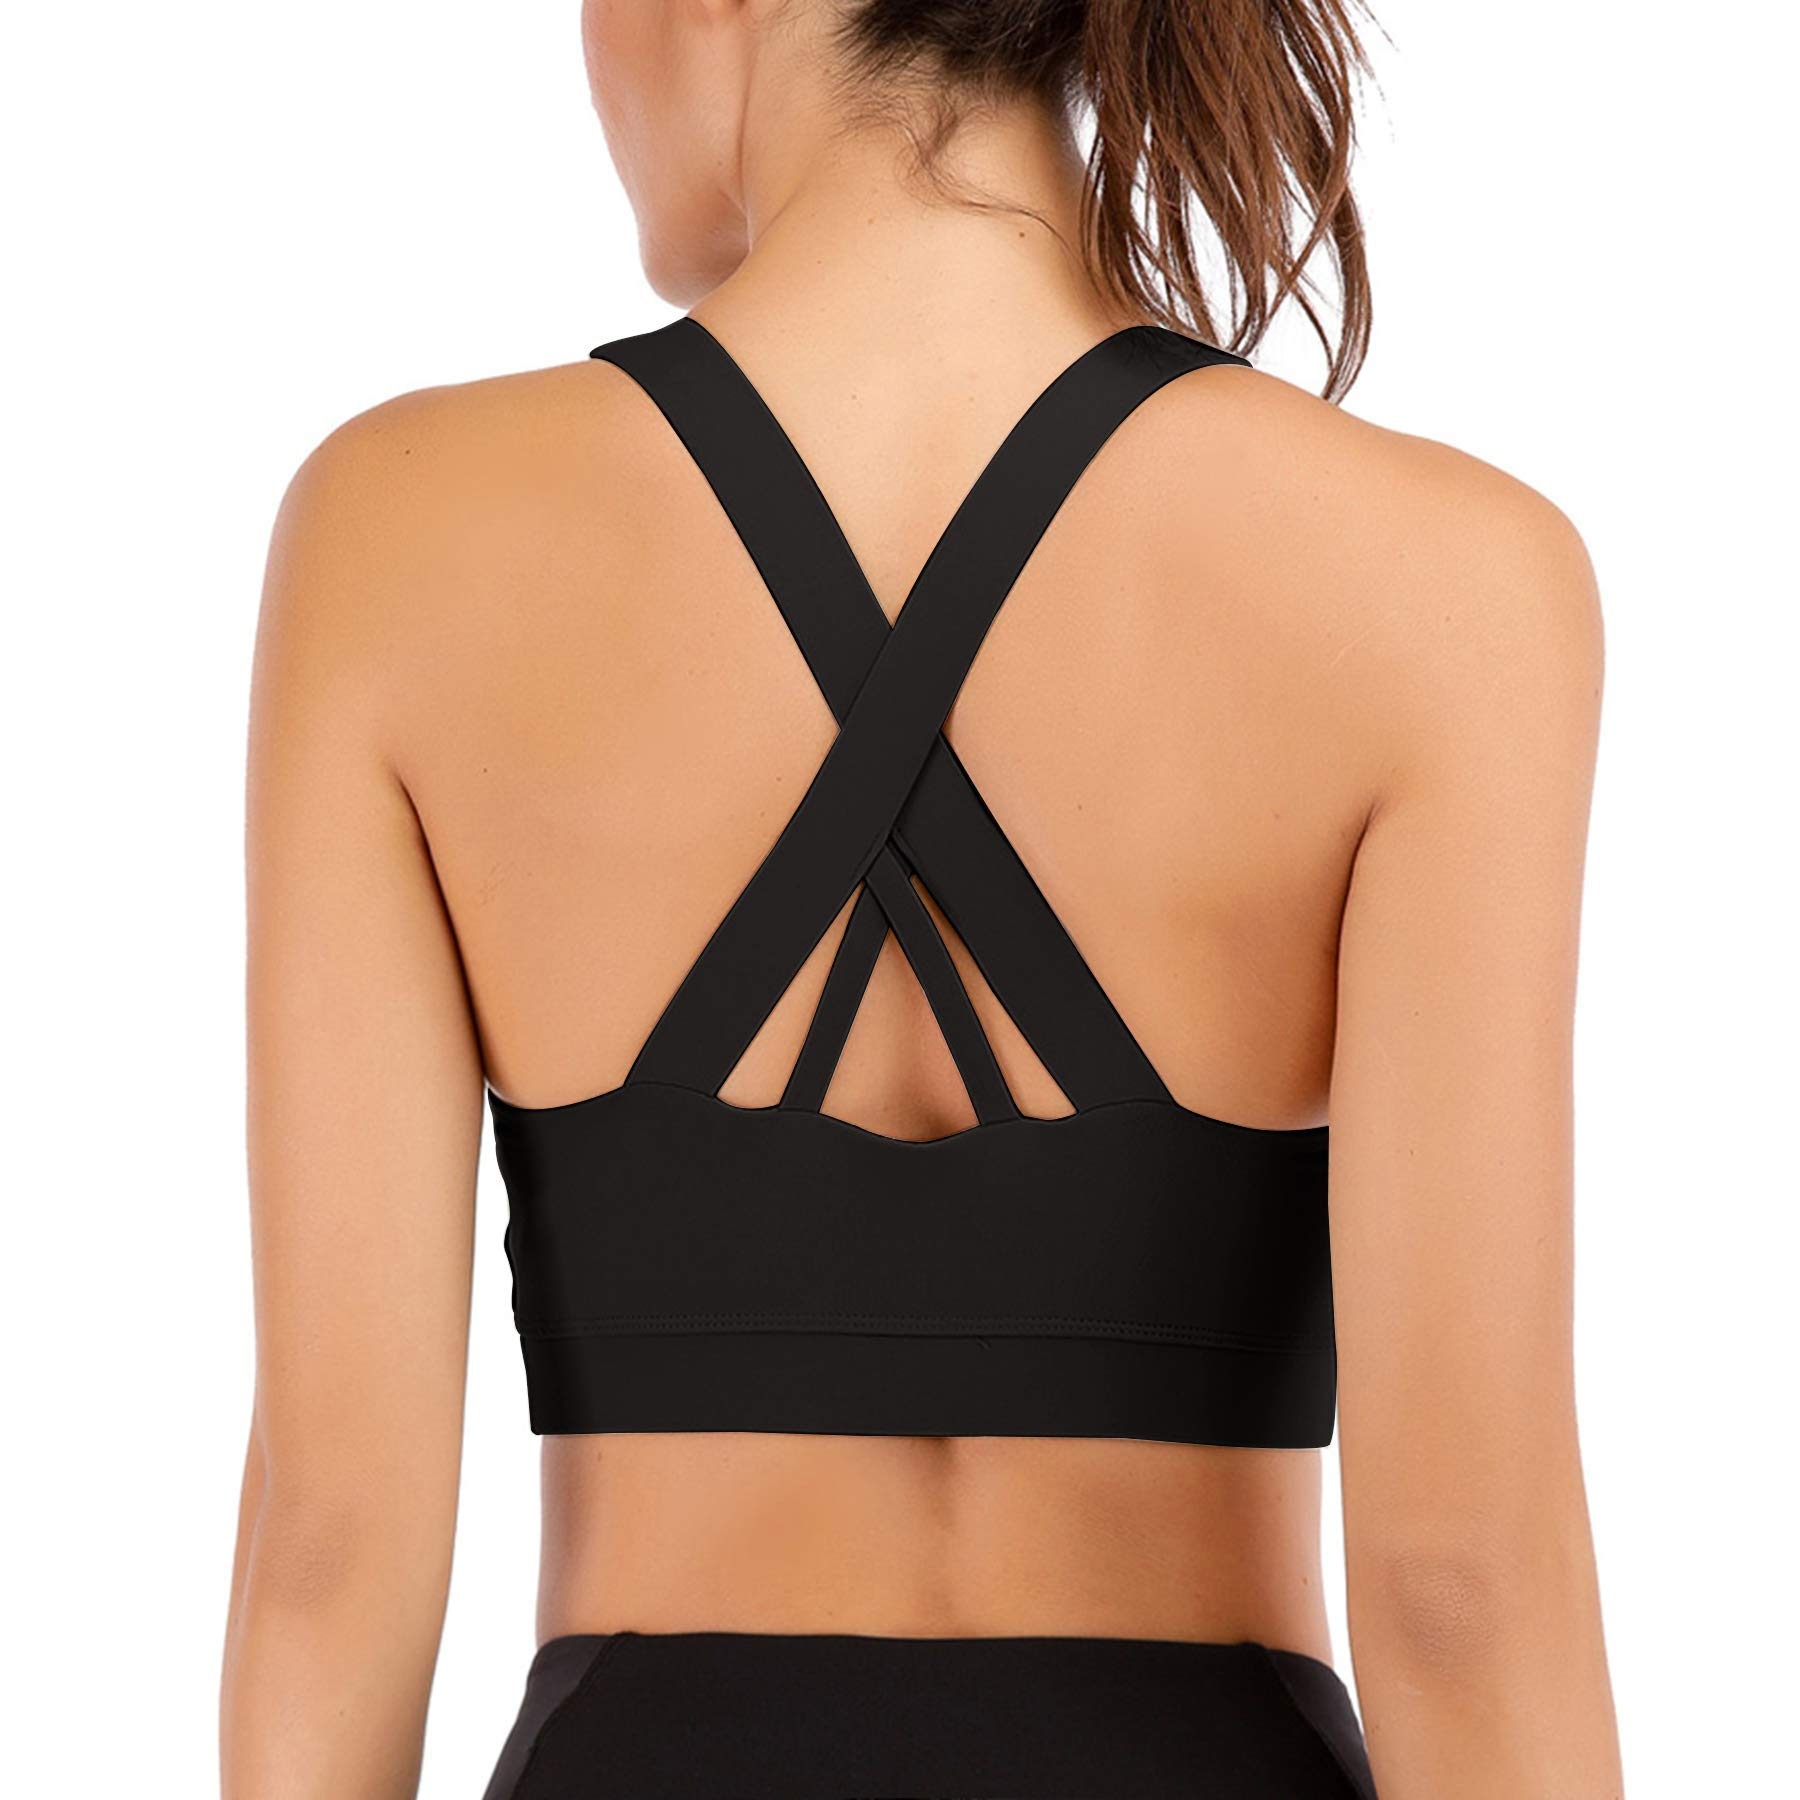 Zando Sports Bras for Women Padded Strappy Sports Bra High Impact for Yoga Workout Fitness Gym with Removable Cups